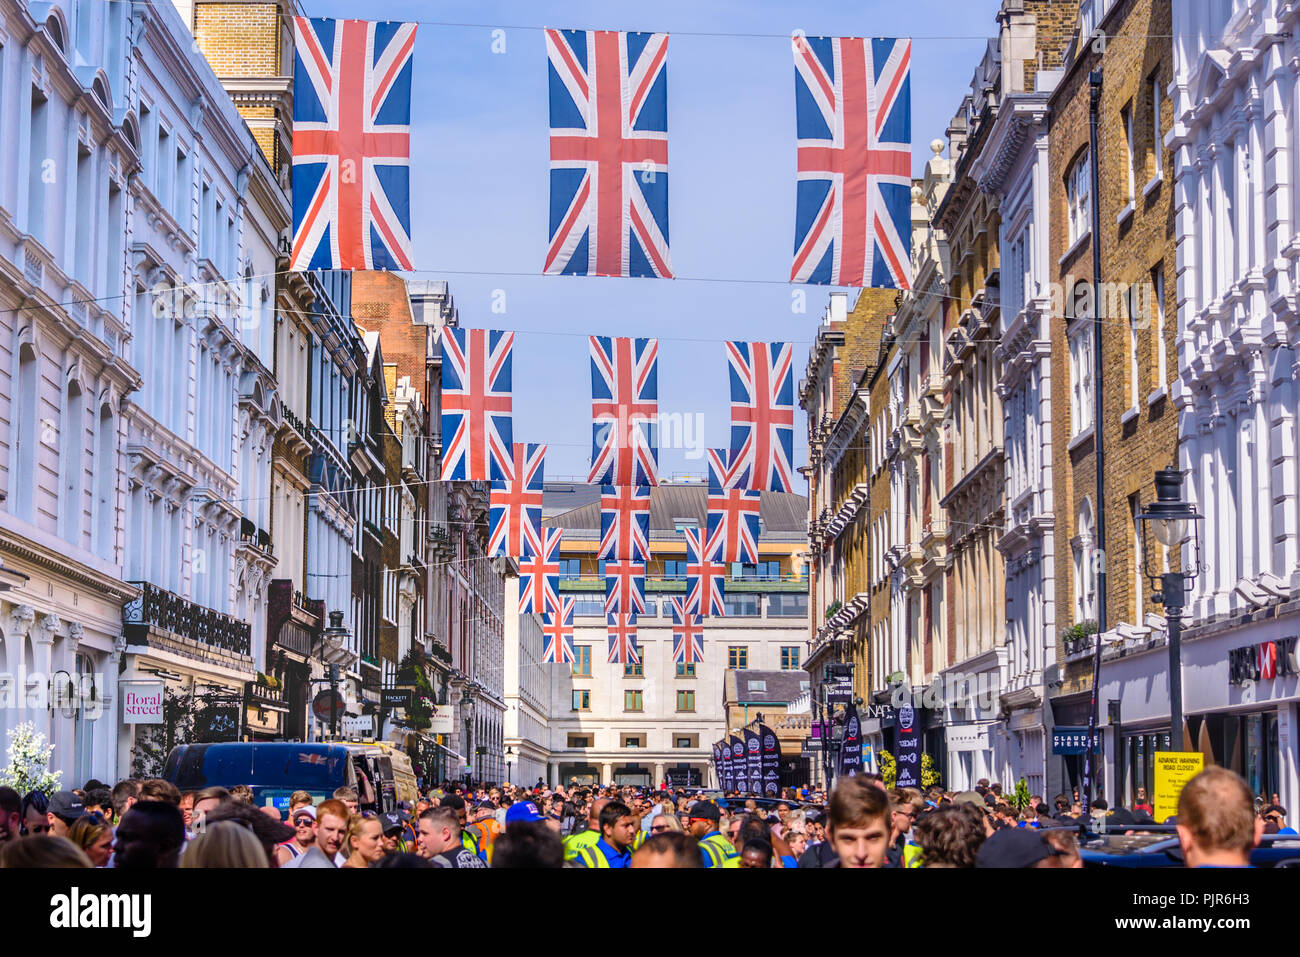 Many Union Flags Union Jacks flying above a street in London. - Stock Image